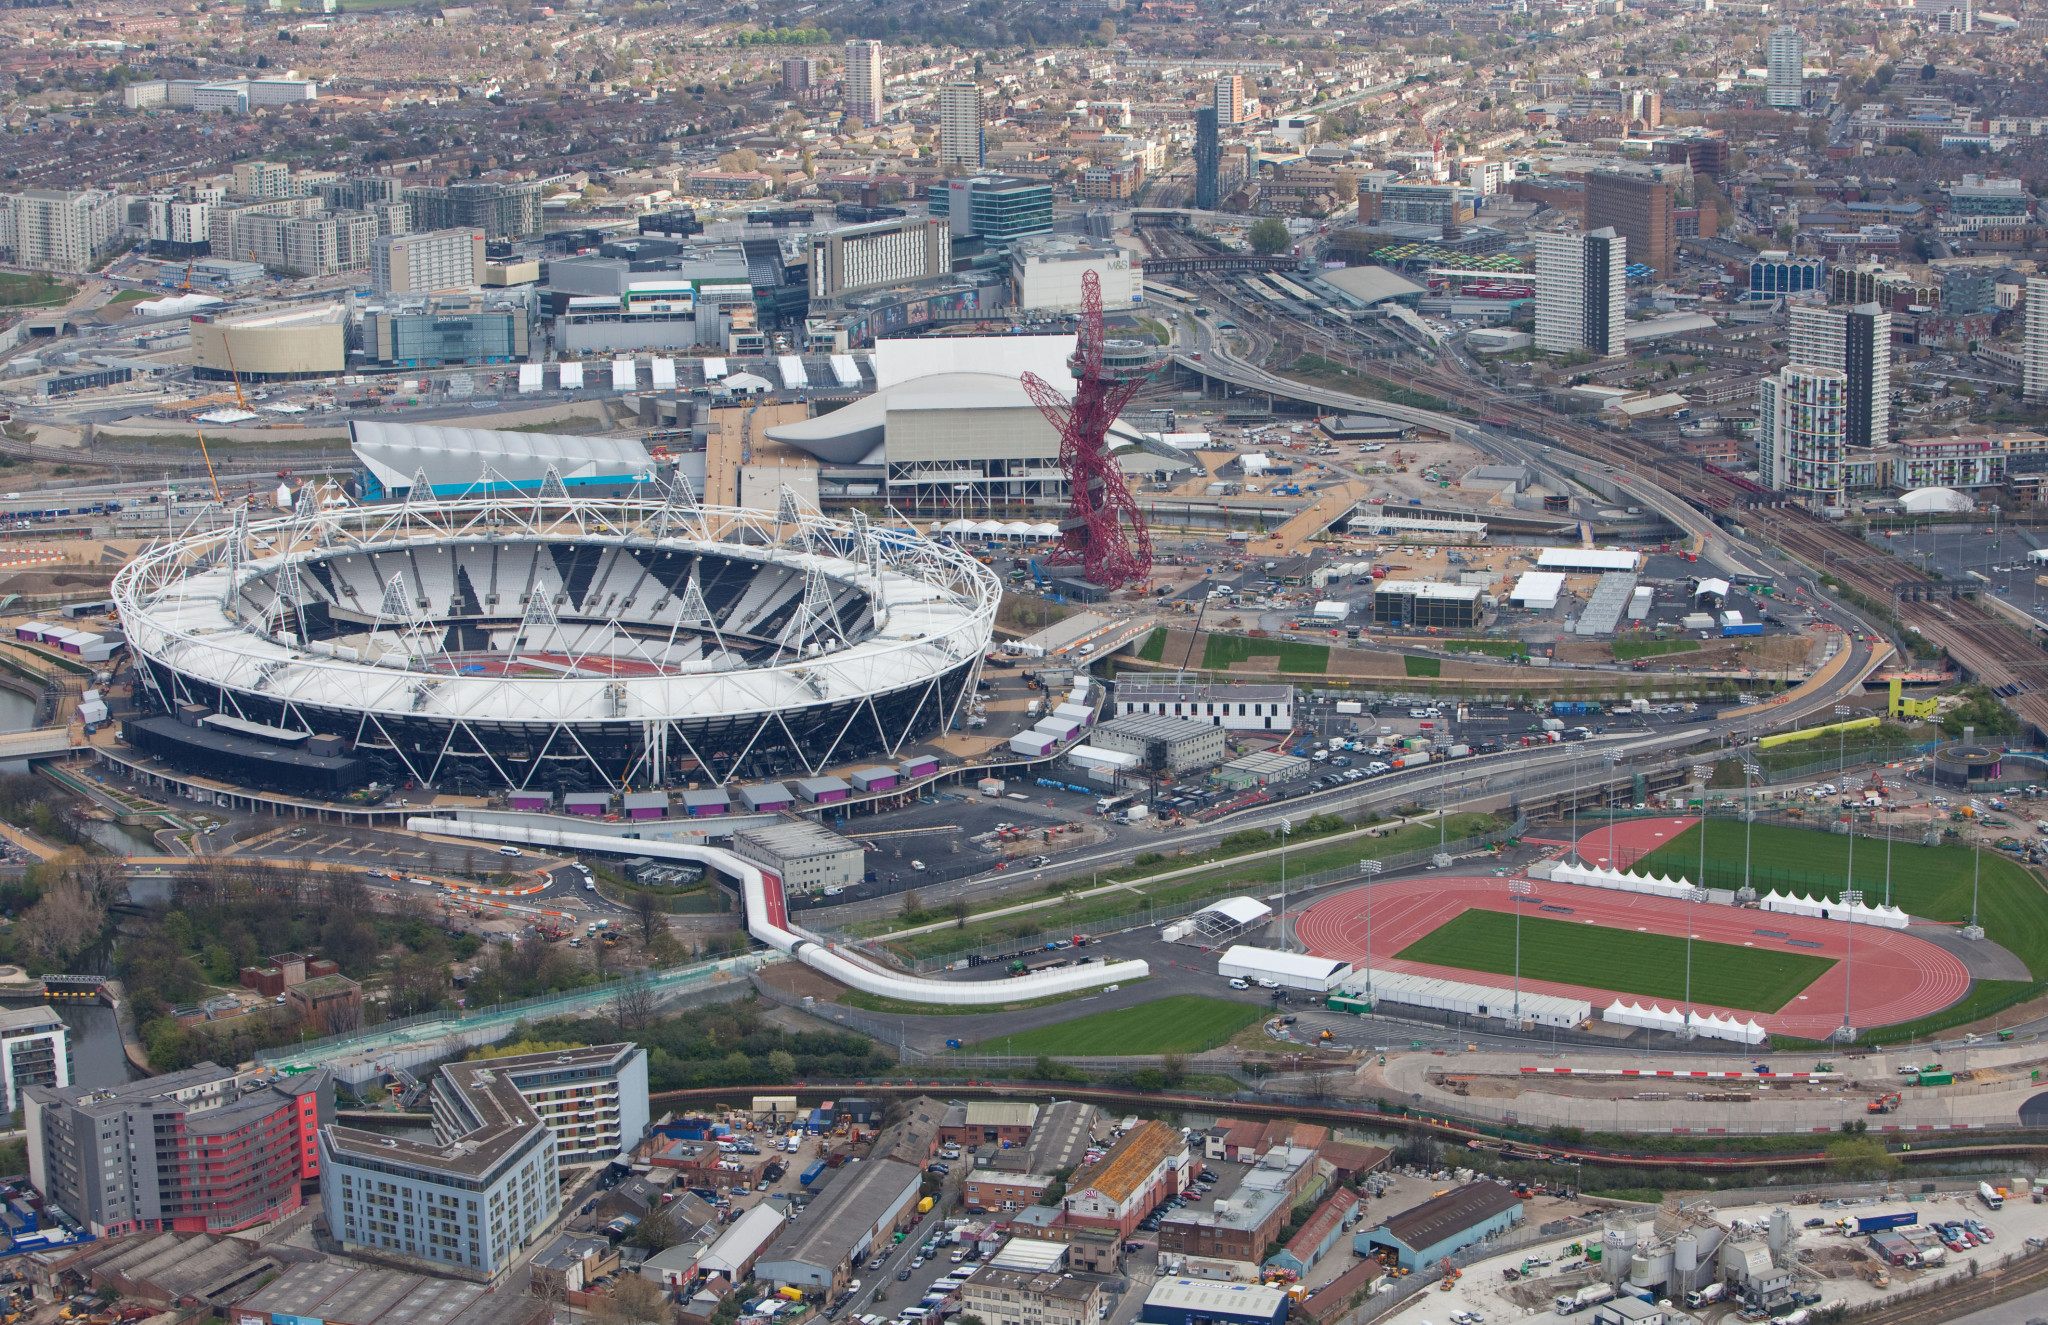 Dame Tanni-Grey Thompson said during the programme she was pleased that the Olympic Park was still used eight years on from London 2012 ©Getty Images